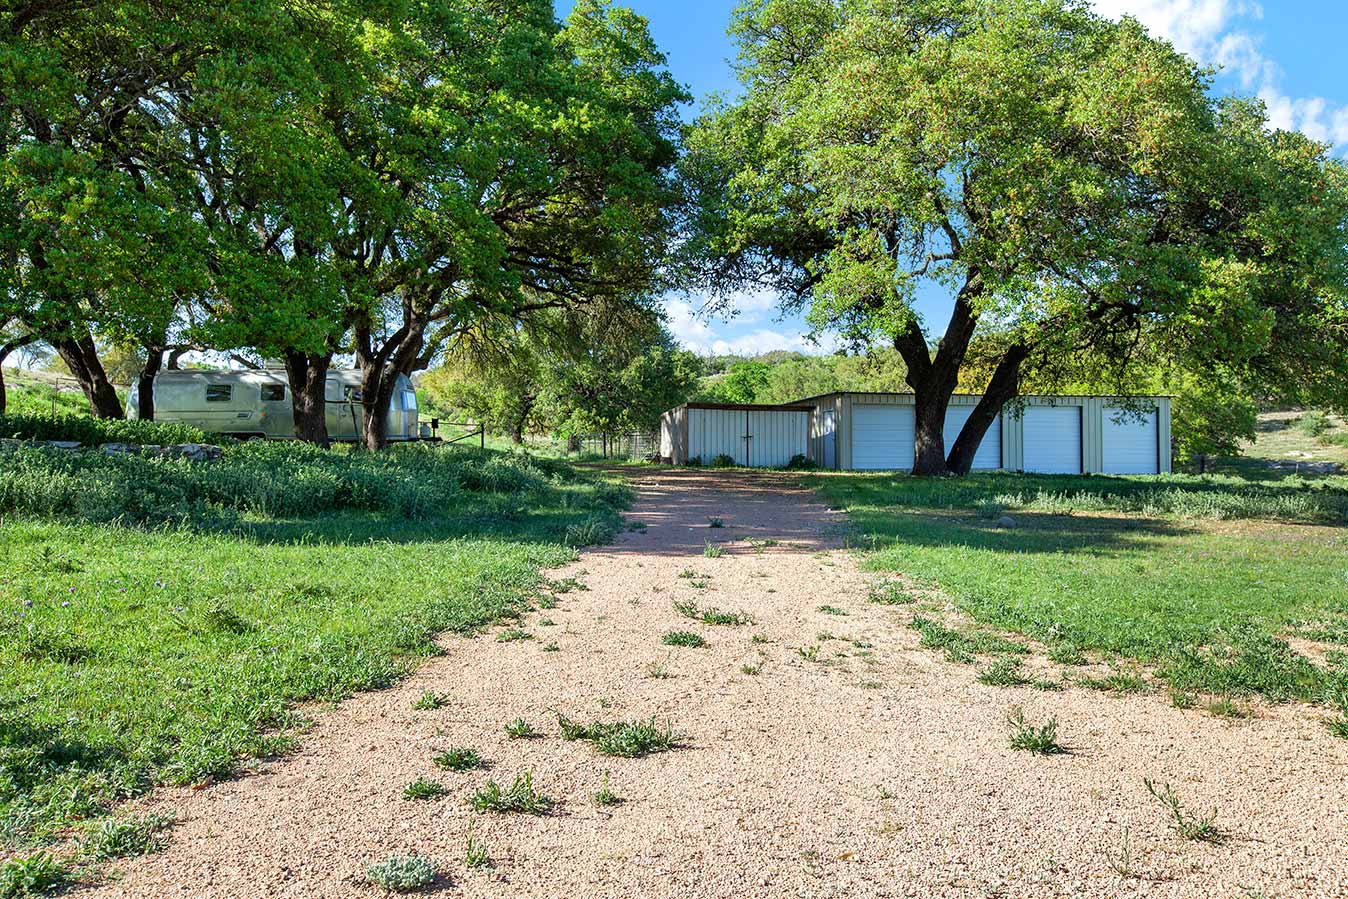 fredericksburg-realty-squaw-creek-ranch-real-estate-land-for-sale-home-house-historic-34.jpg